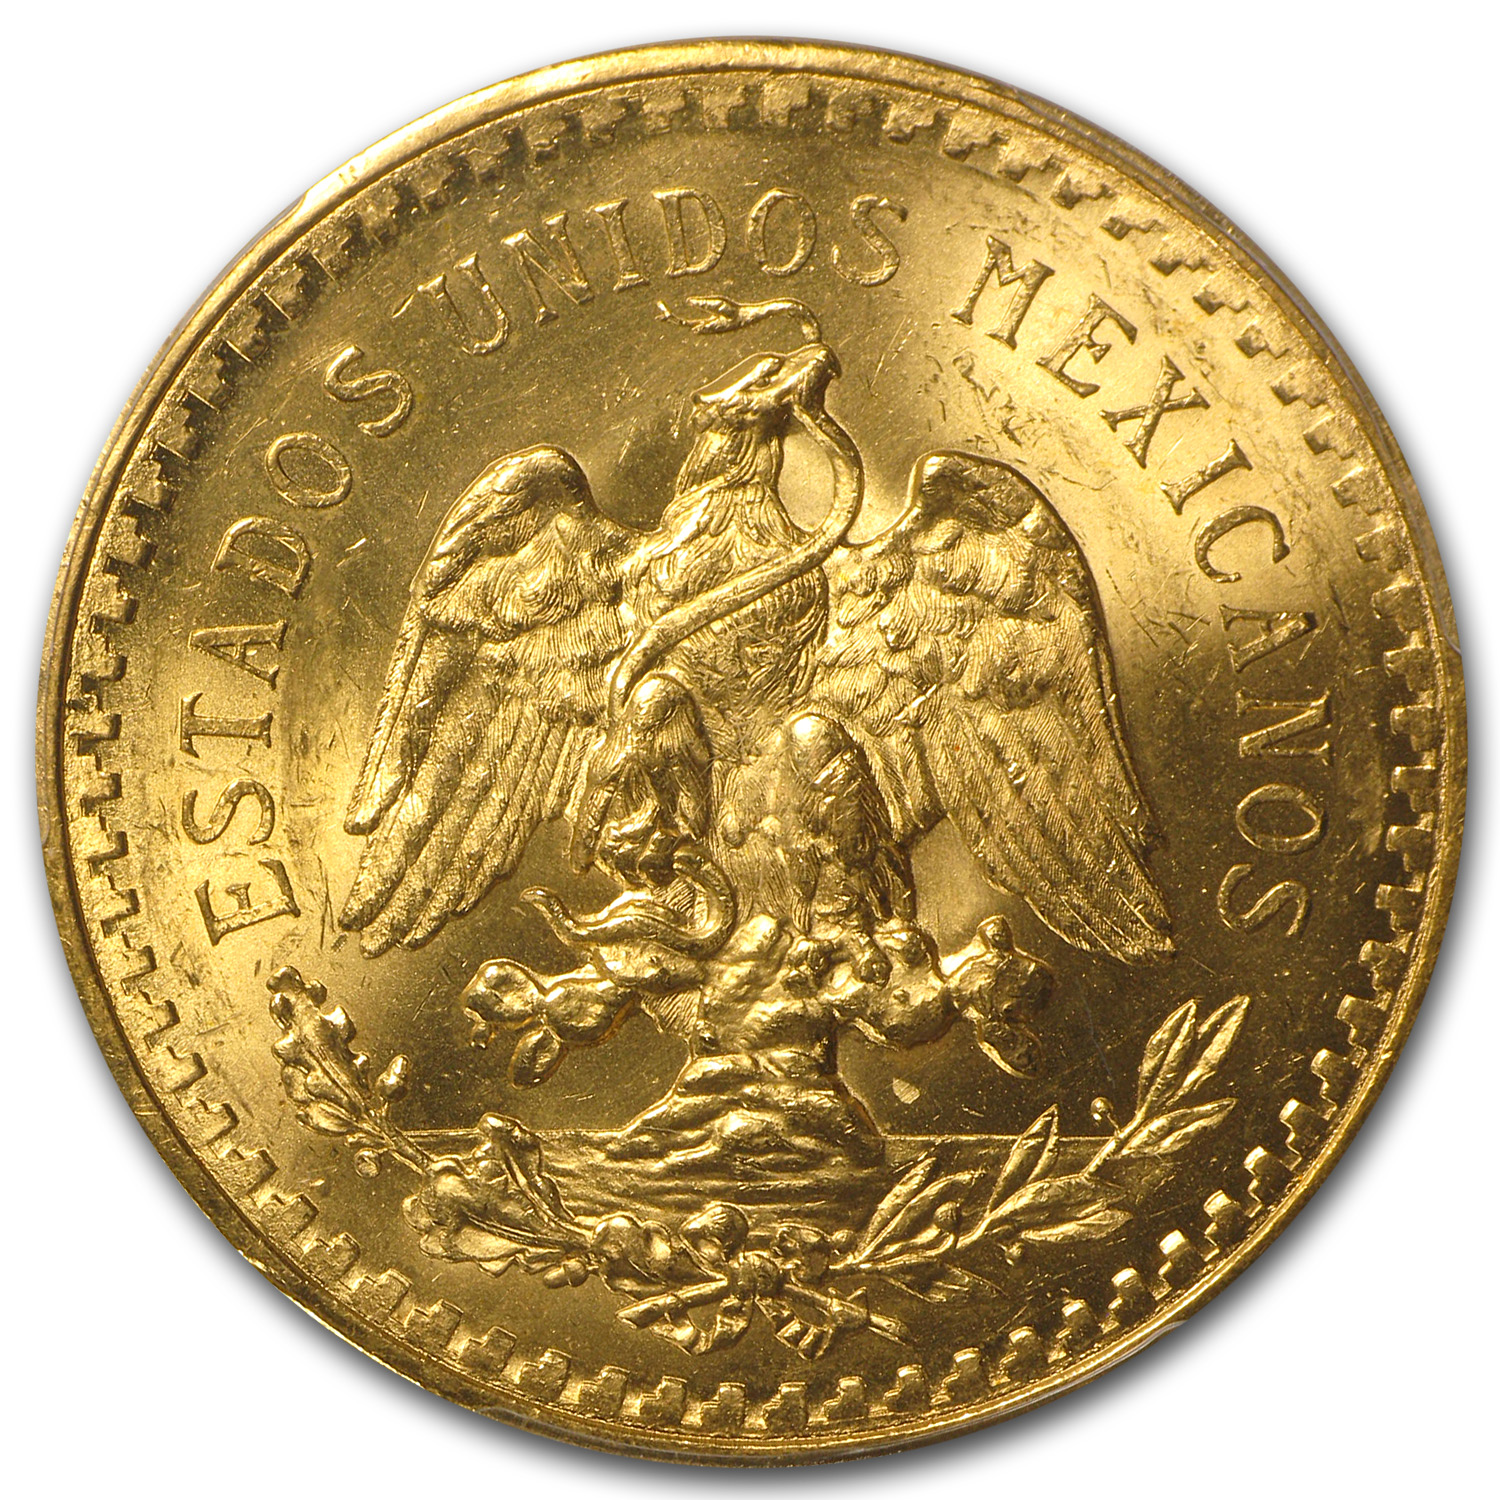 Mexico 1930 50 Pesos Gold Coin - MS-65 PCGS